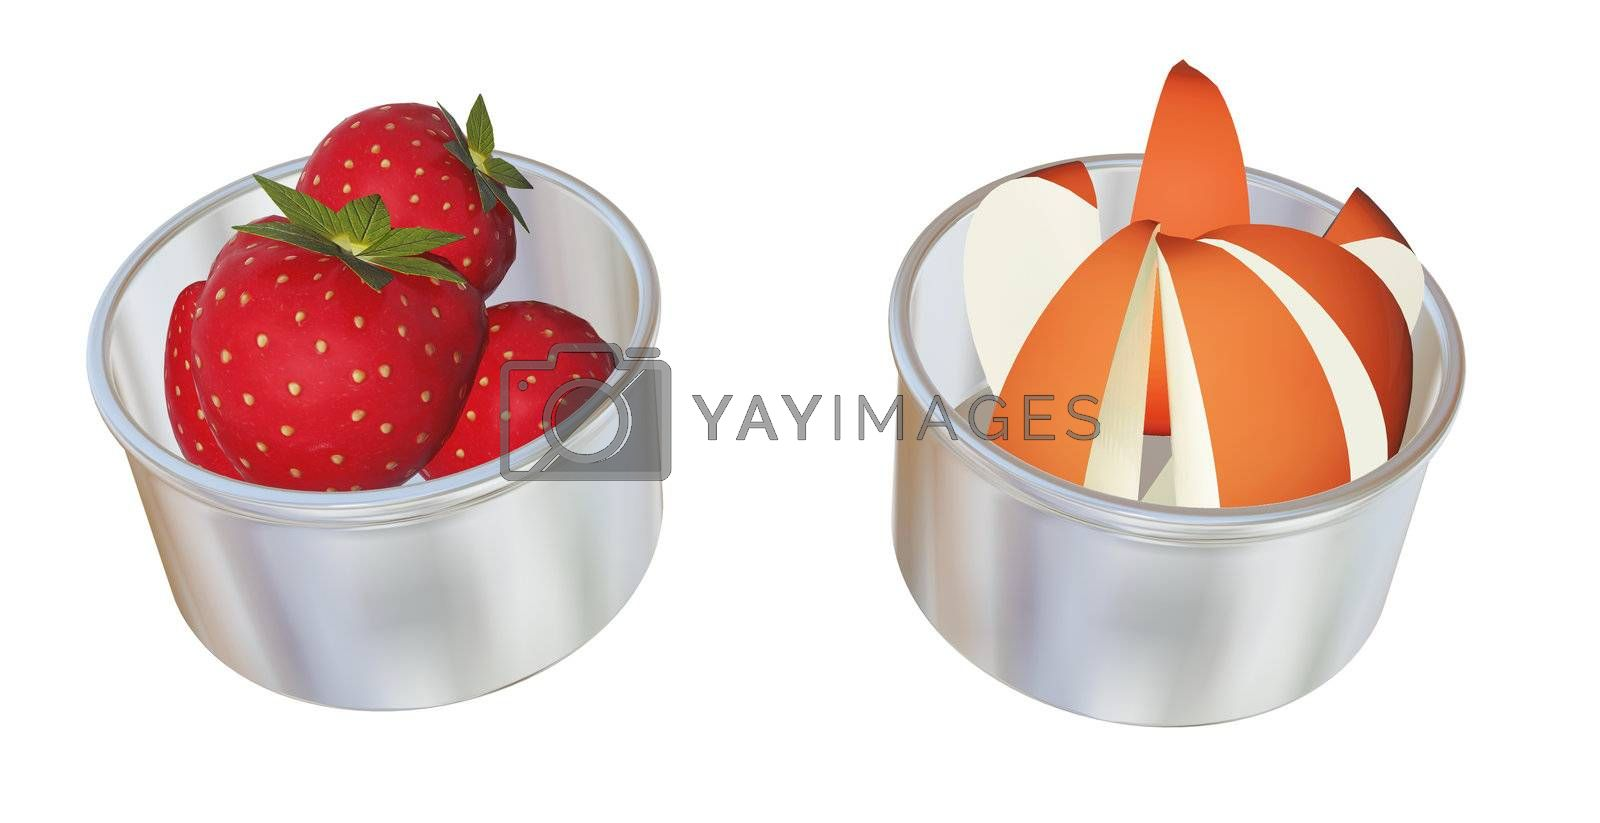 Aluminum or stainless steel dessert cups with whole strawberries and apple wedges, 3D illustration, isolated against a white background